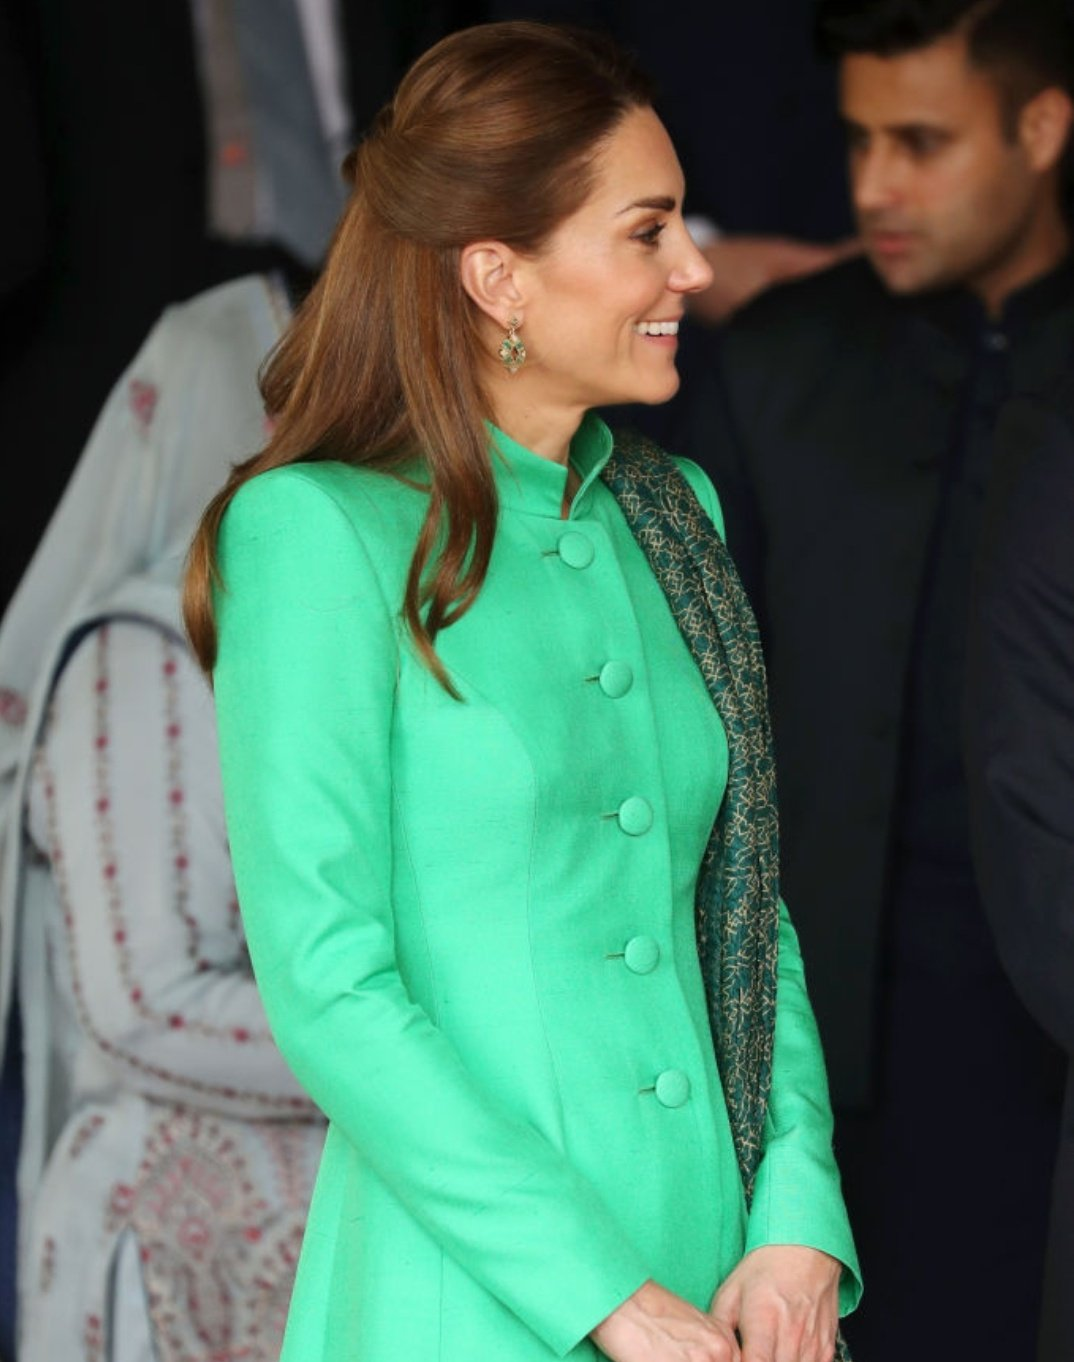 The Duchess of Cambridge is a regal sight in her Catherine Walker tunic